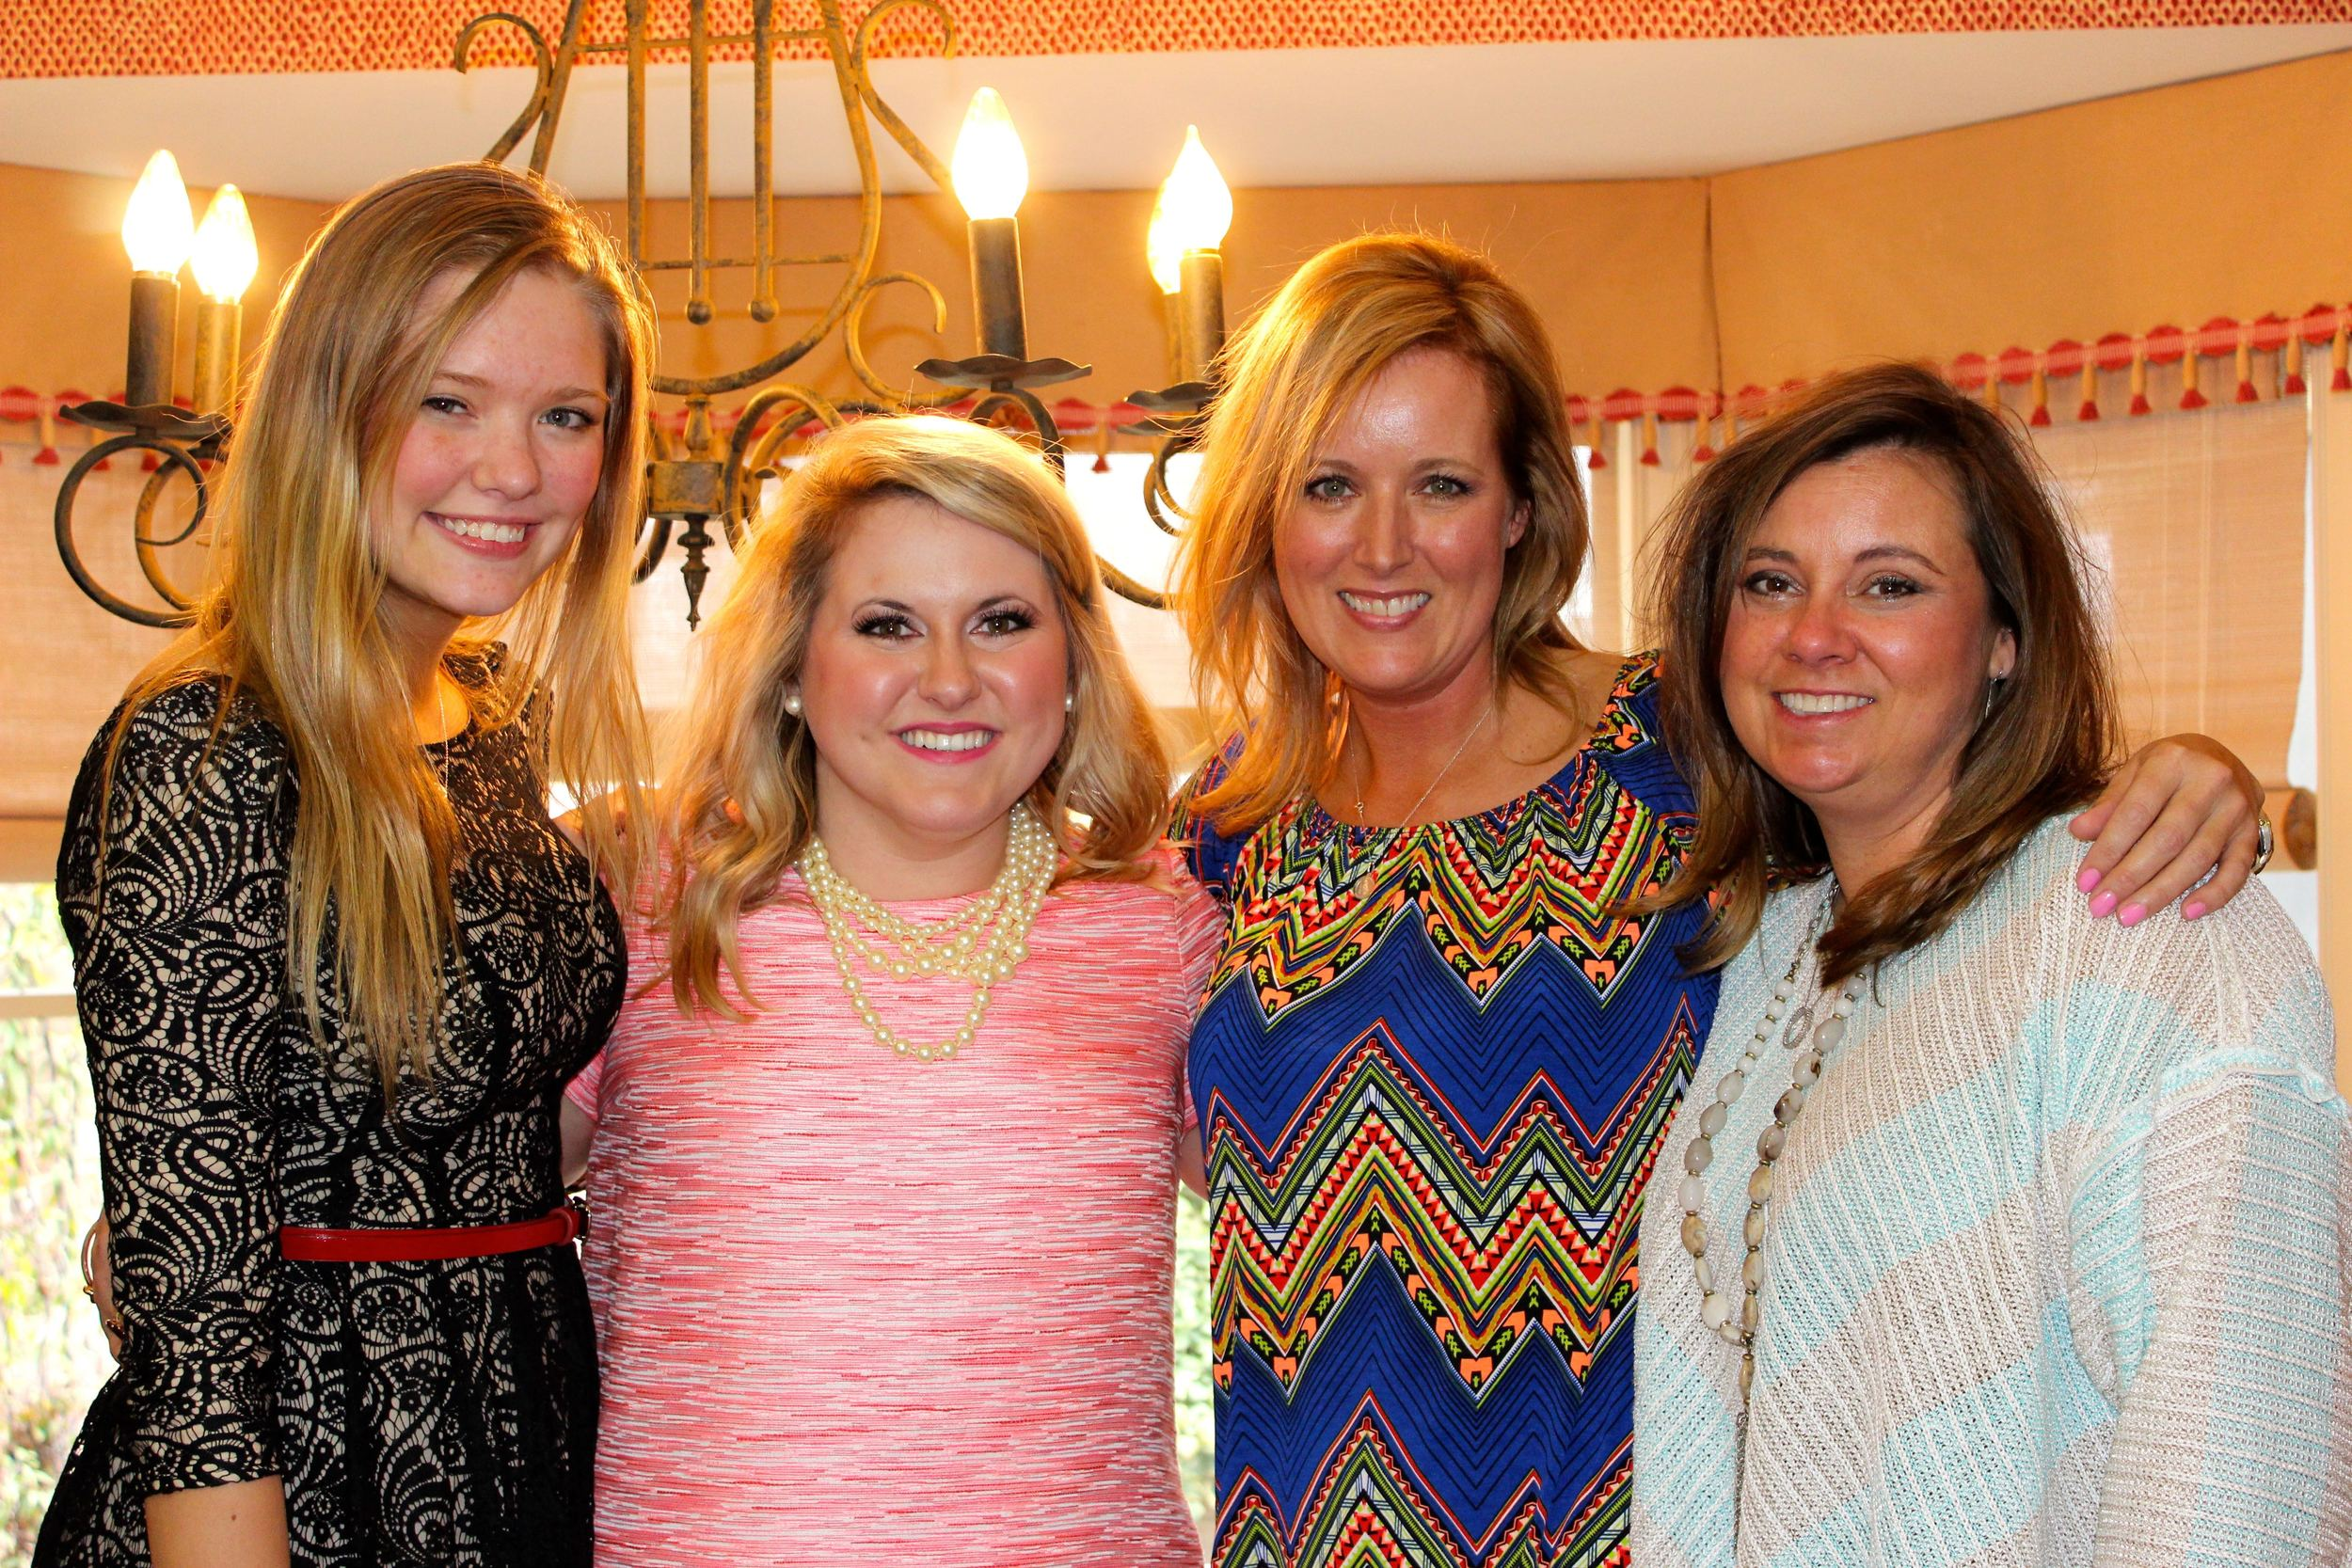 I have a beautiful family! My cousin Erin, myself, my cousin Tracey, and my sweet step-mom Jamey